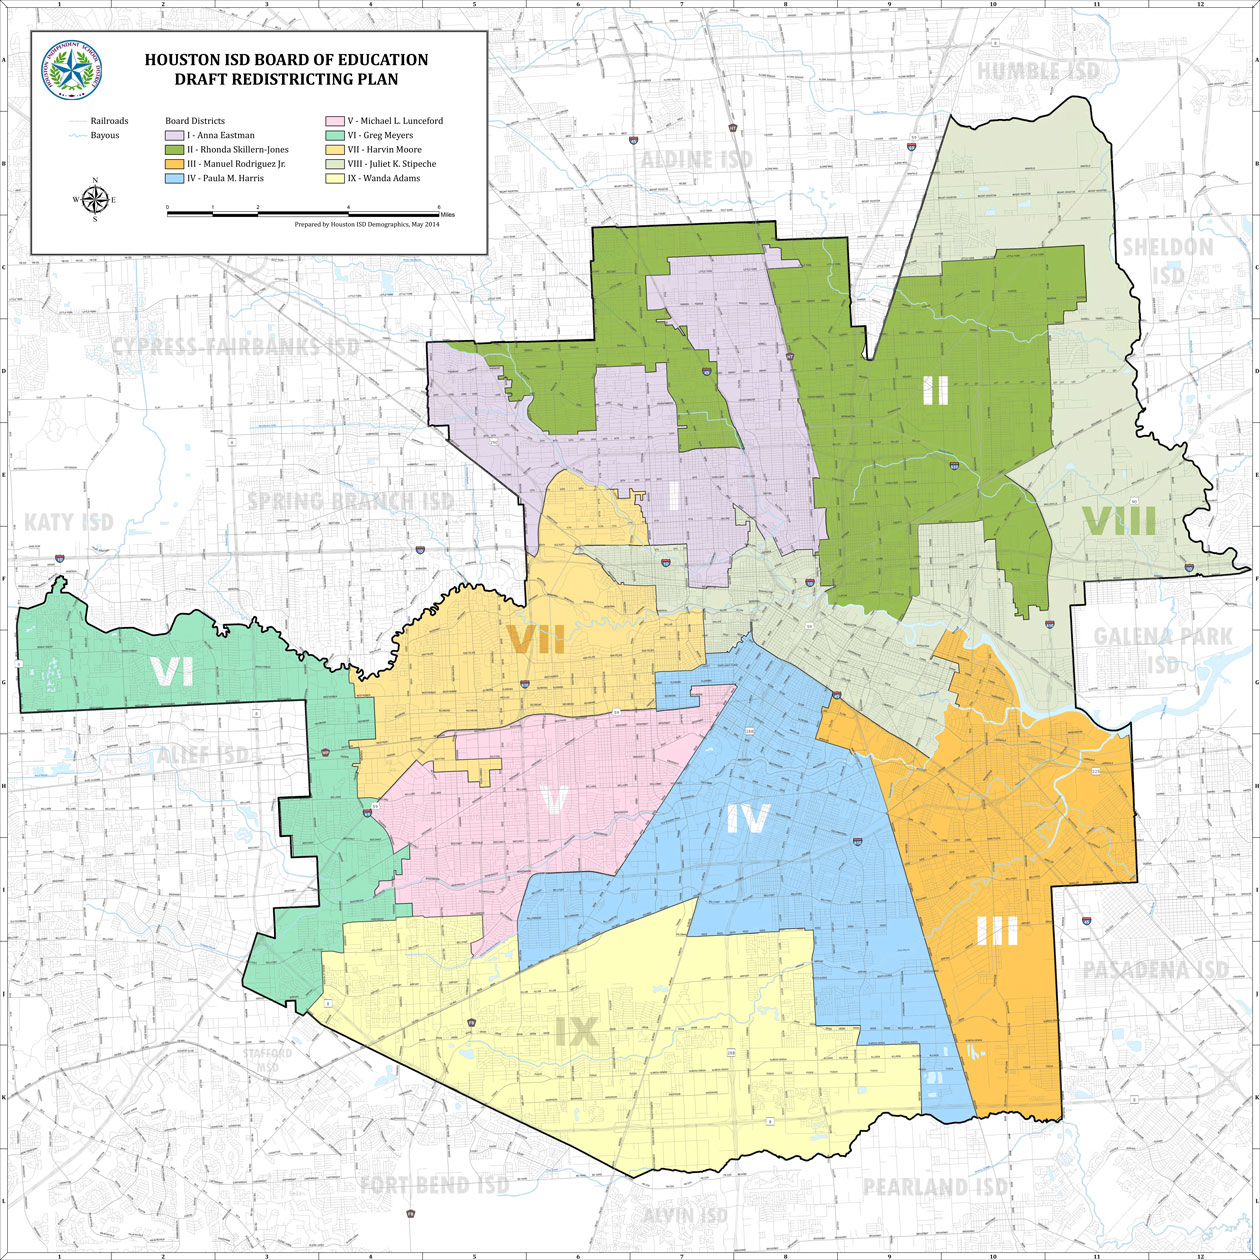 Houston School District Map Houston School District Redrawing Voting Map – Houston Public Media Houston School District Map